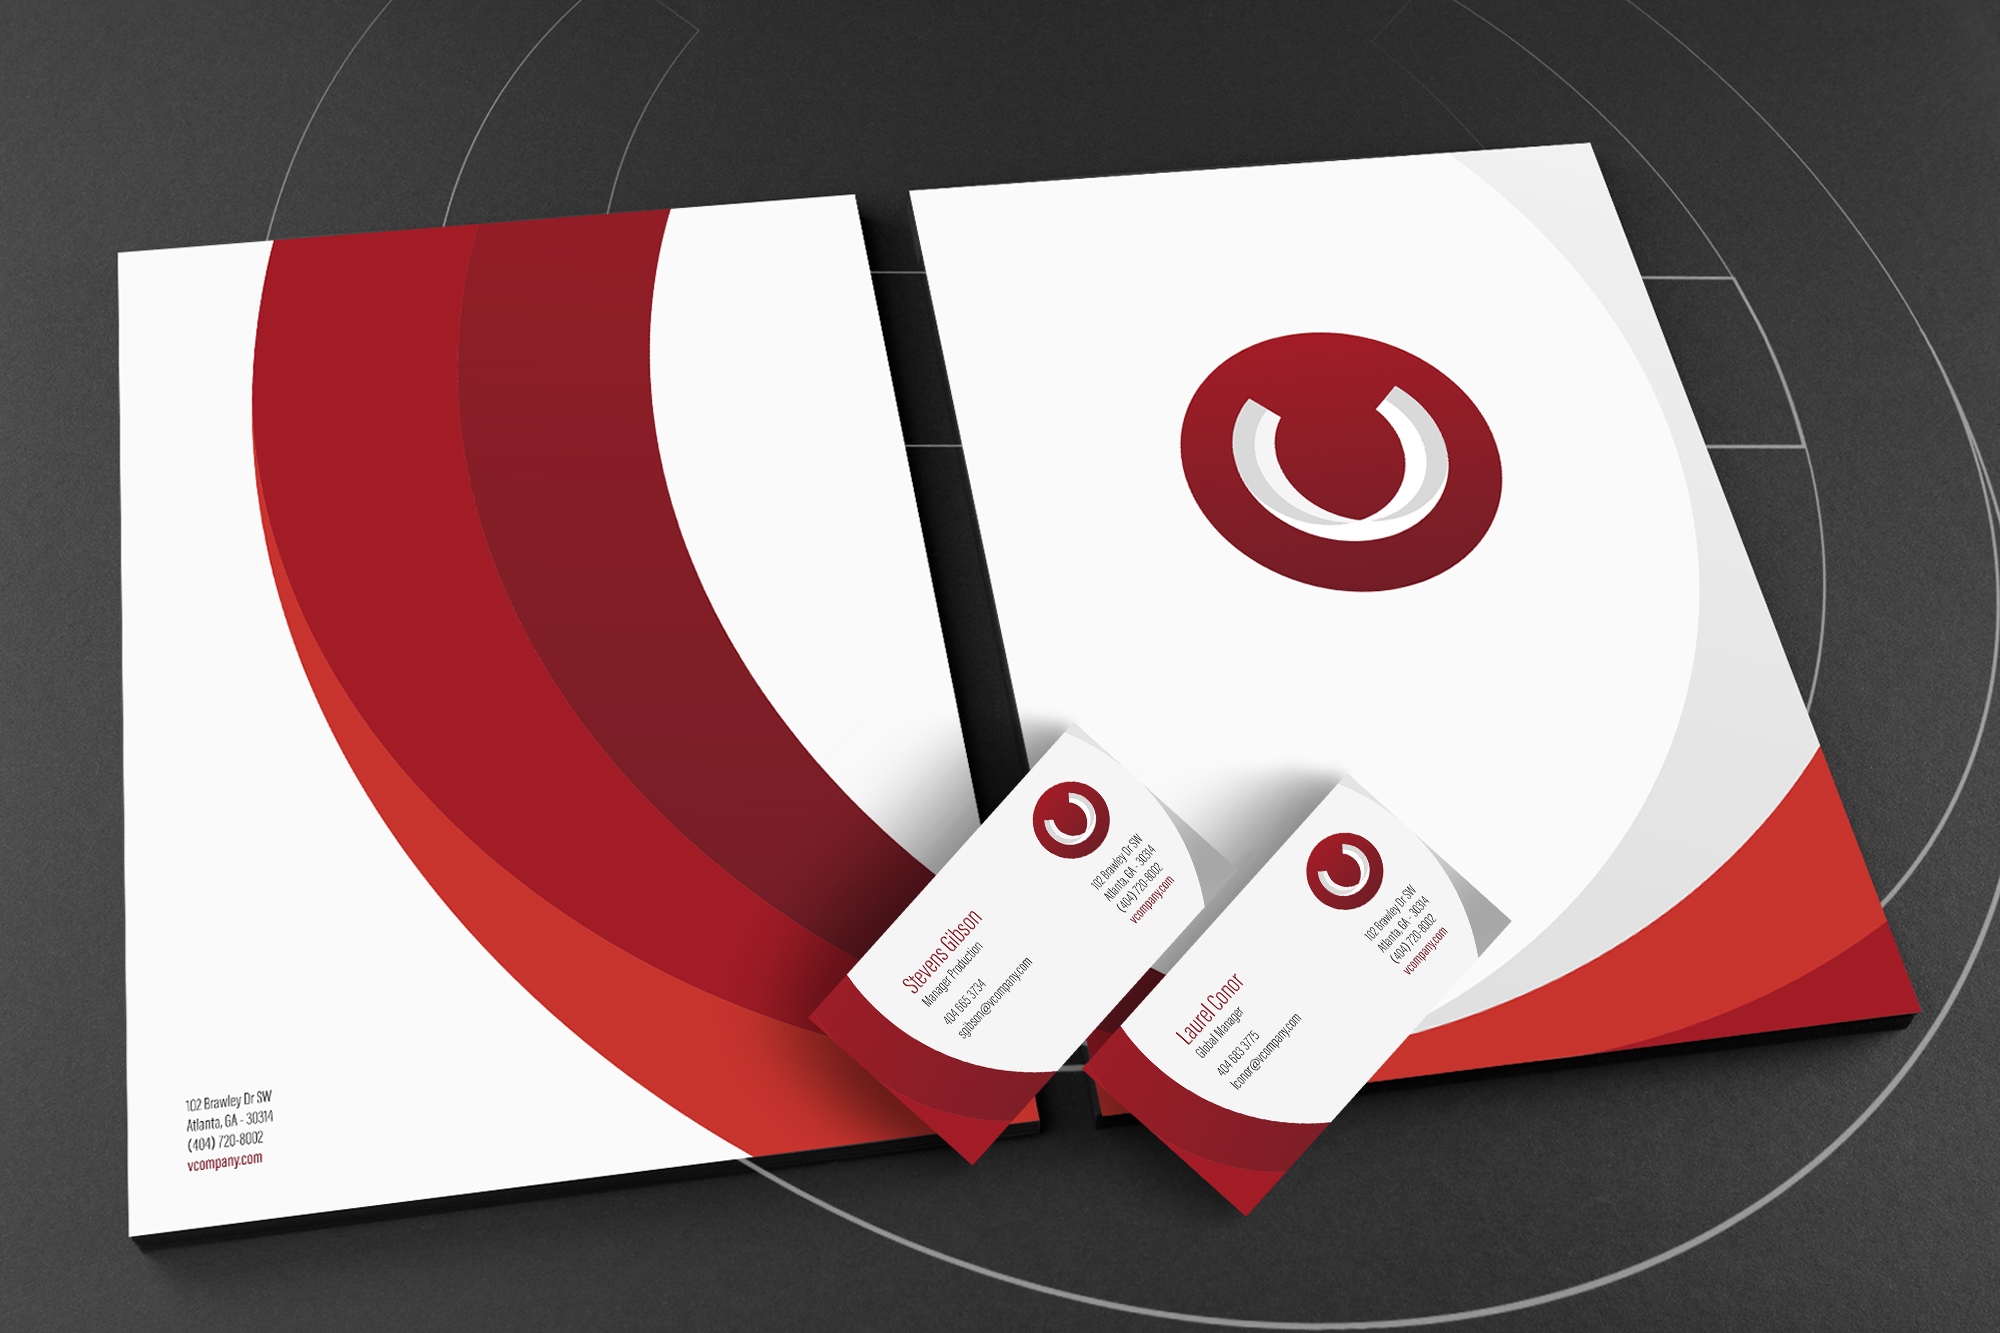 Branding, corporate and visual identity, stationery for company